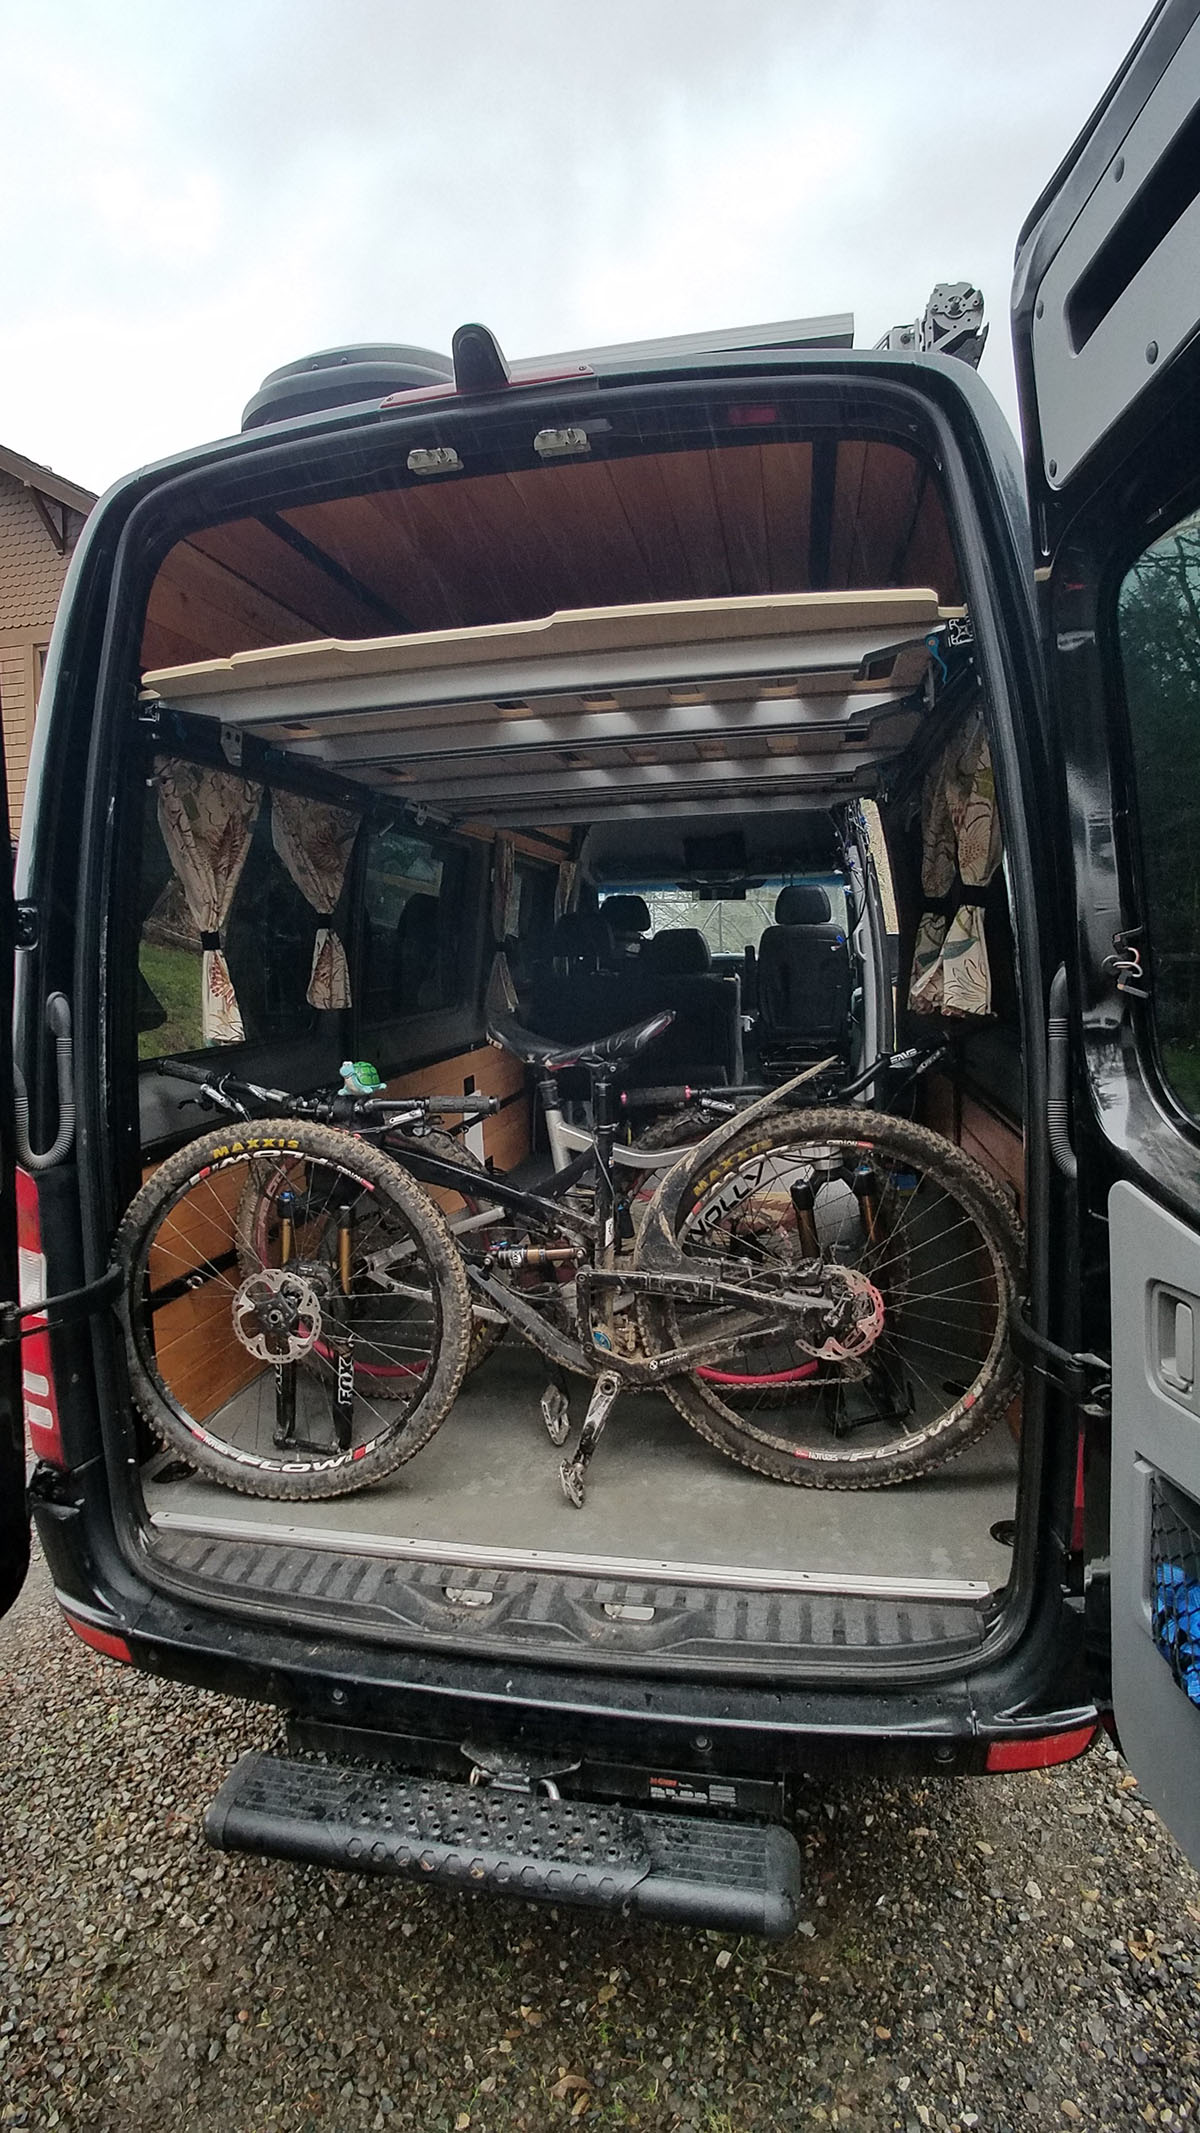 two bikes as easy as one - with room to maneuver